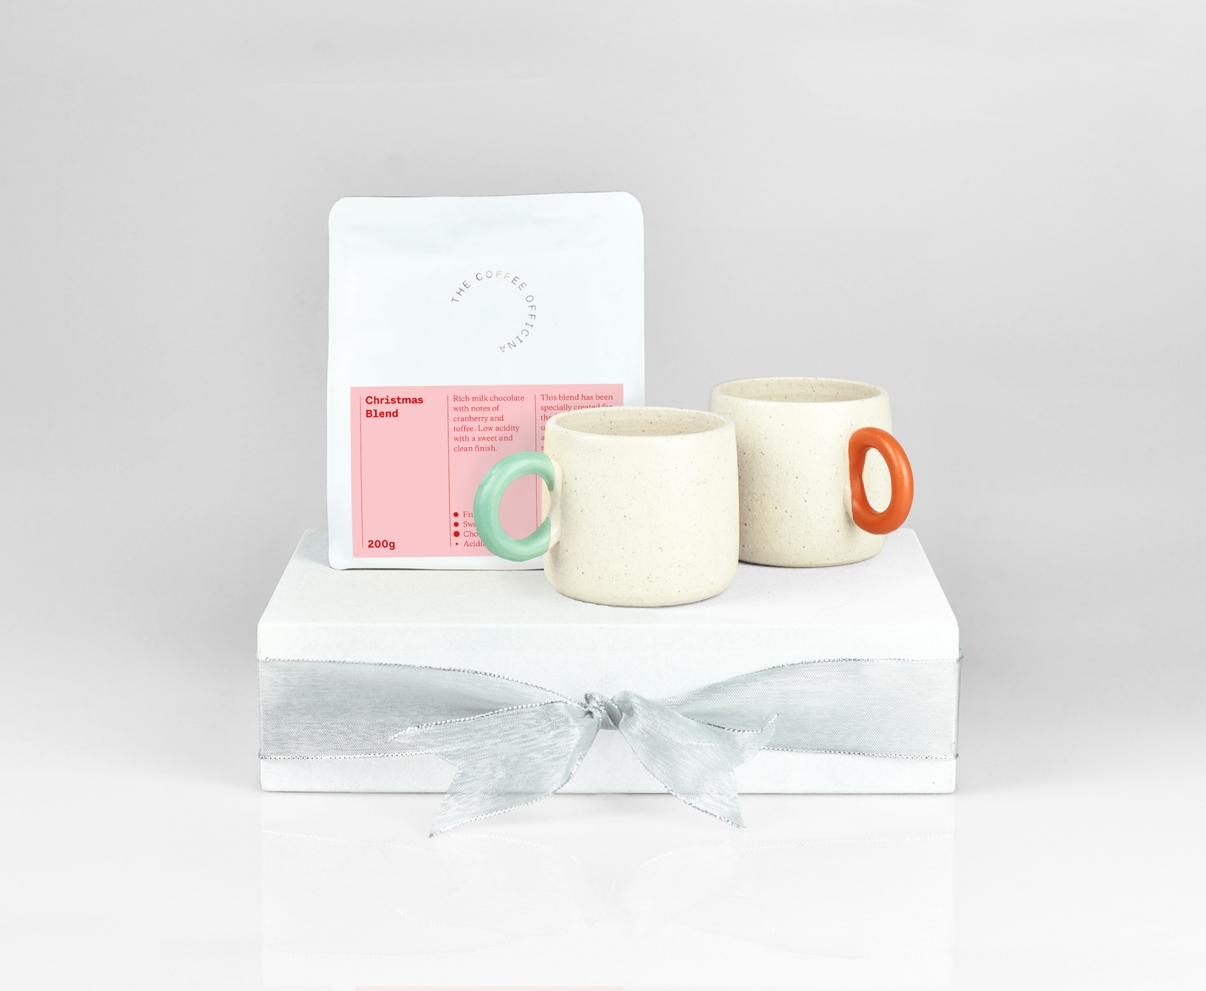 The Coffee Officina Baby Mugs and Christmas Blend gift set